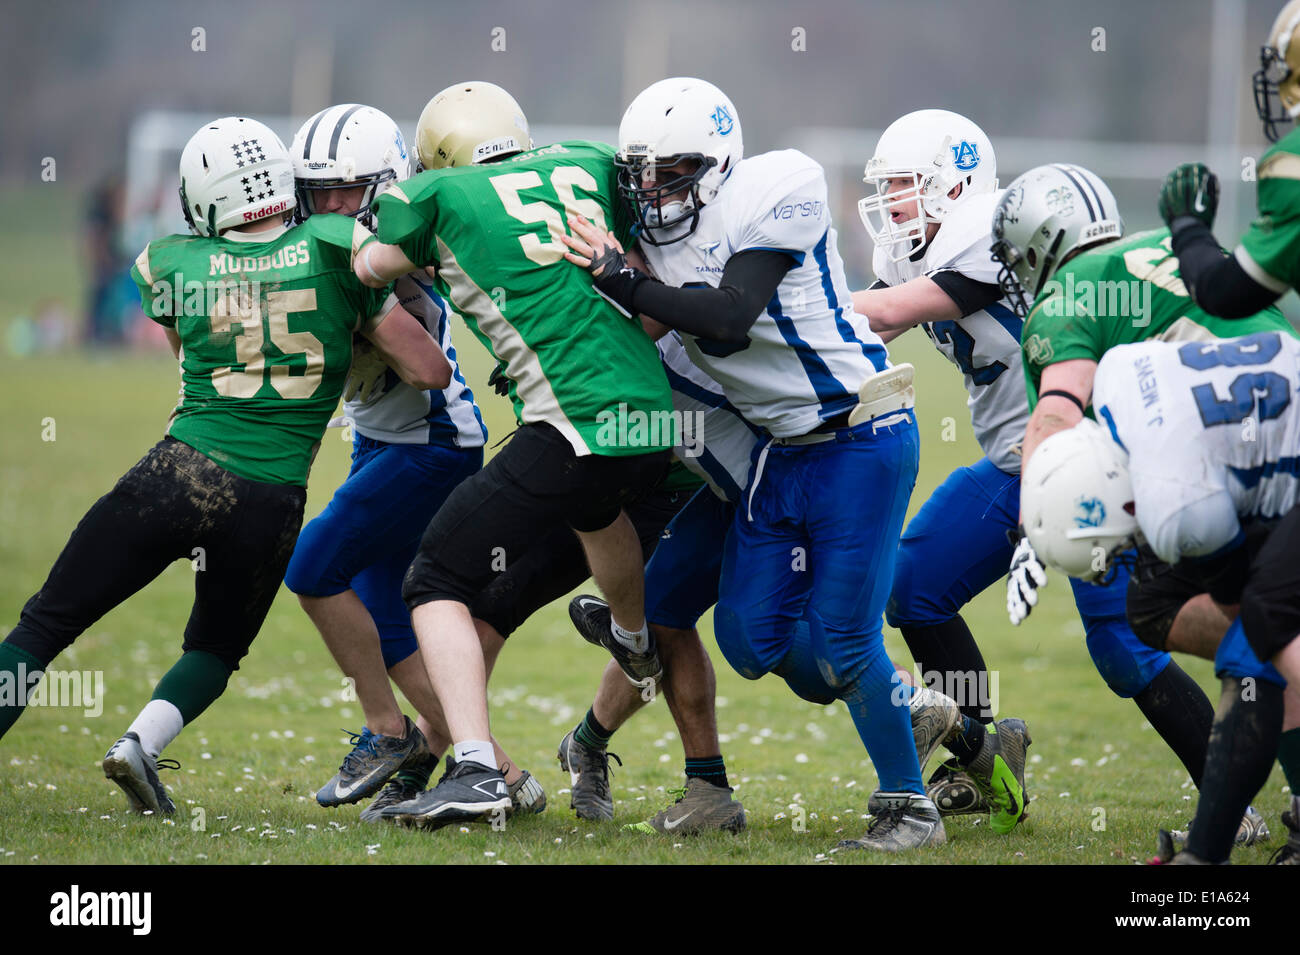 Tarannau, Aberystwyth University american football team (in bianco) giocando una partita del campionato Wales UK Immagini Stock